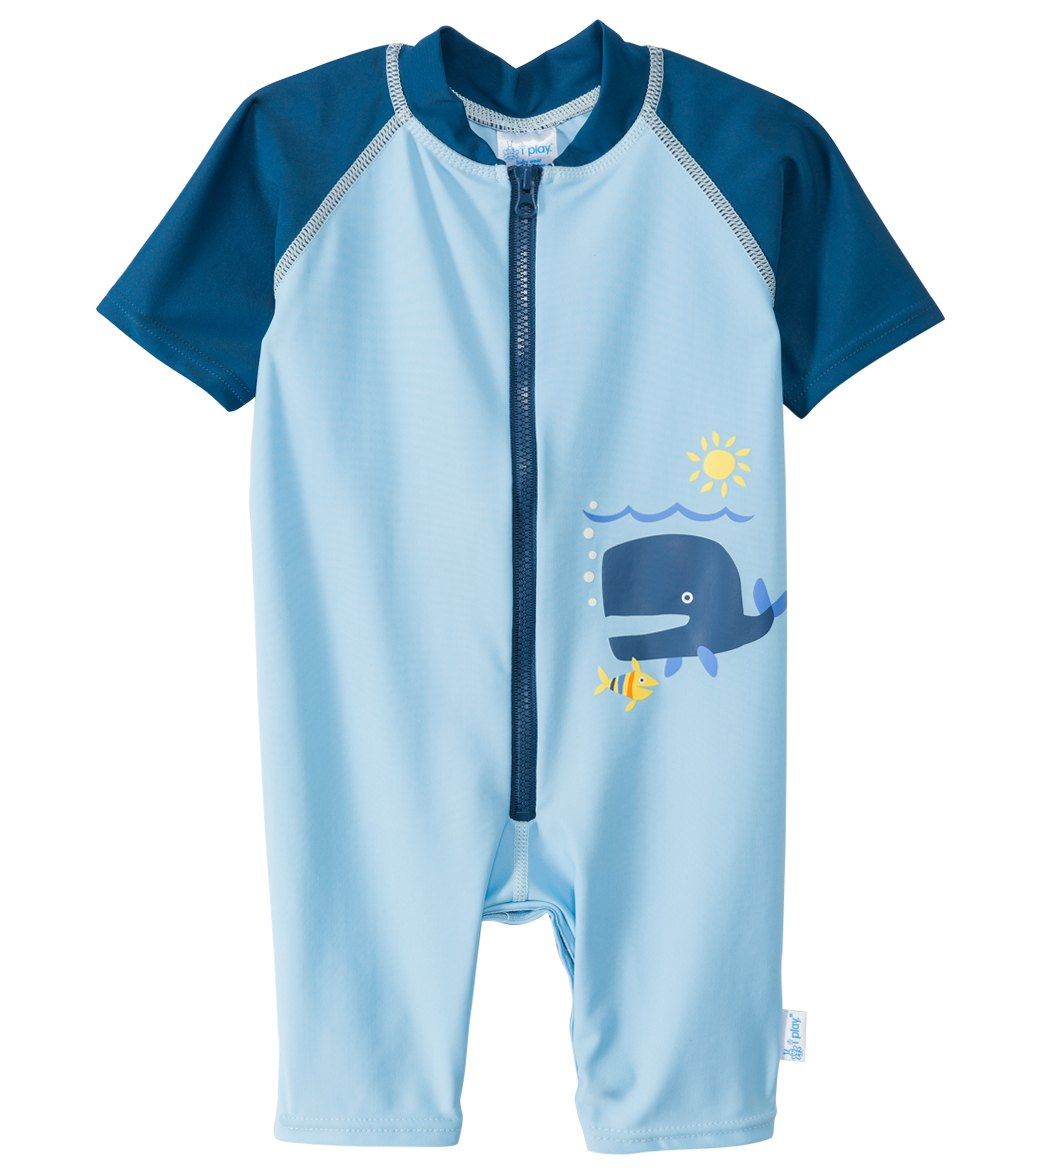 e6350d5c24 iPlay Blue Whale One Piece UV Zip Sunsuit (Baby, Toddler) at SwimOutlet.com